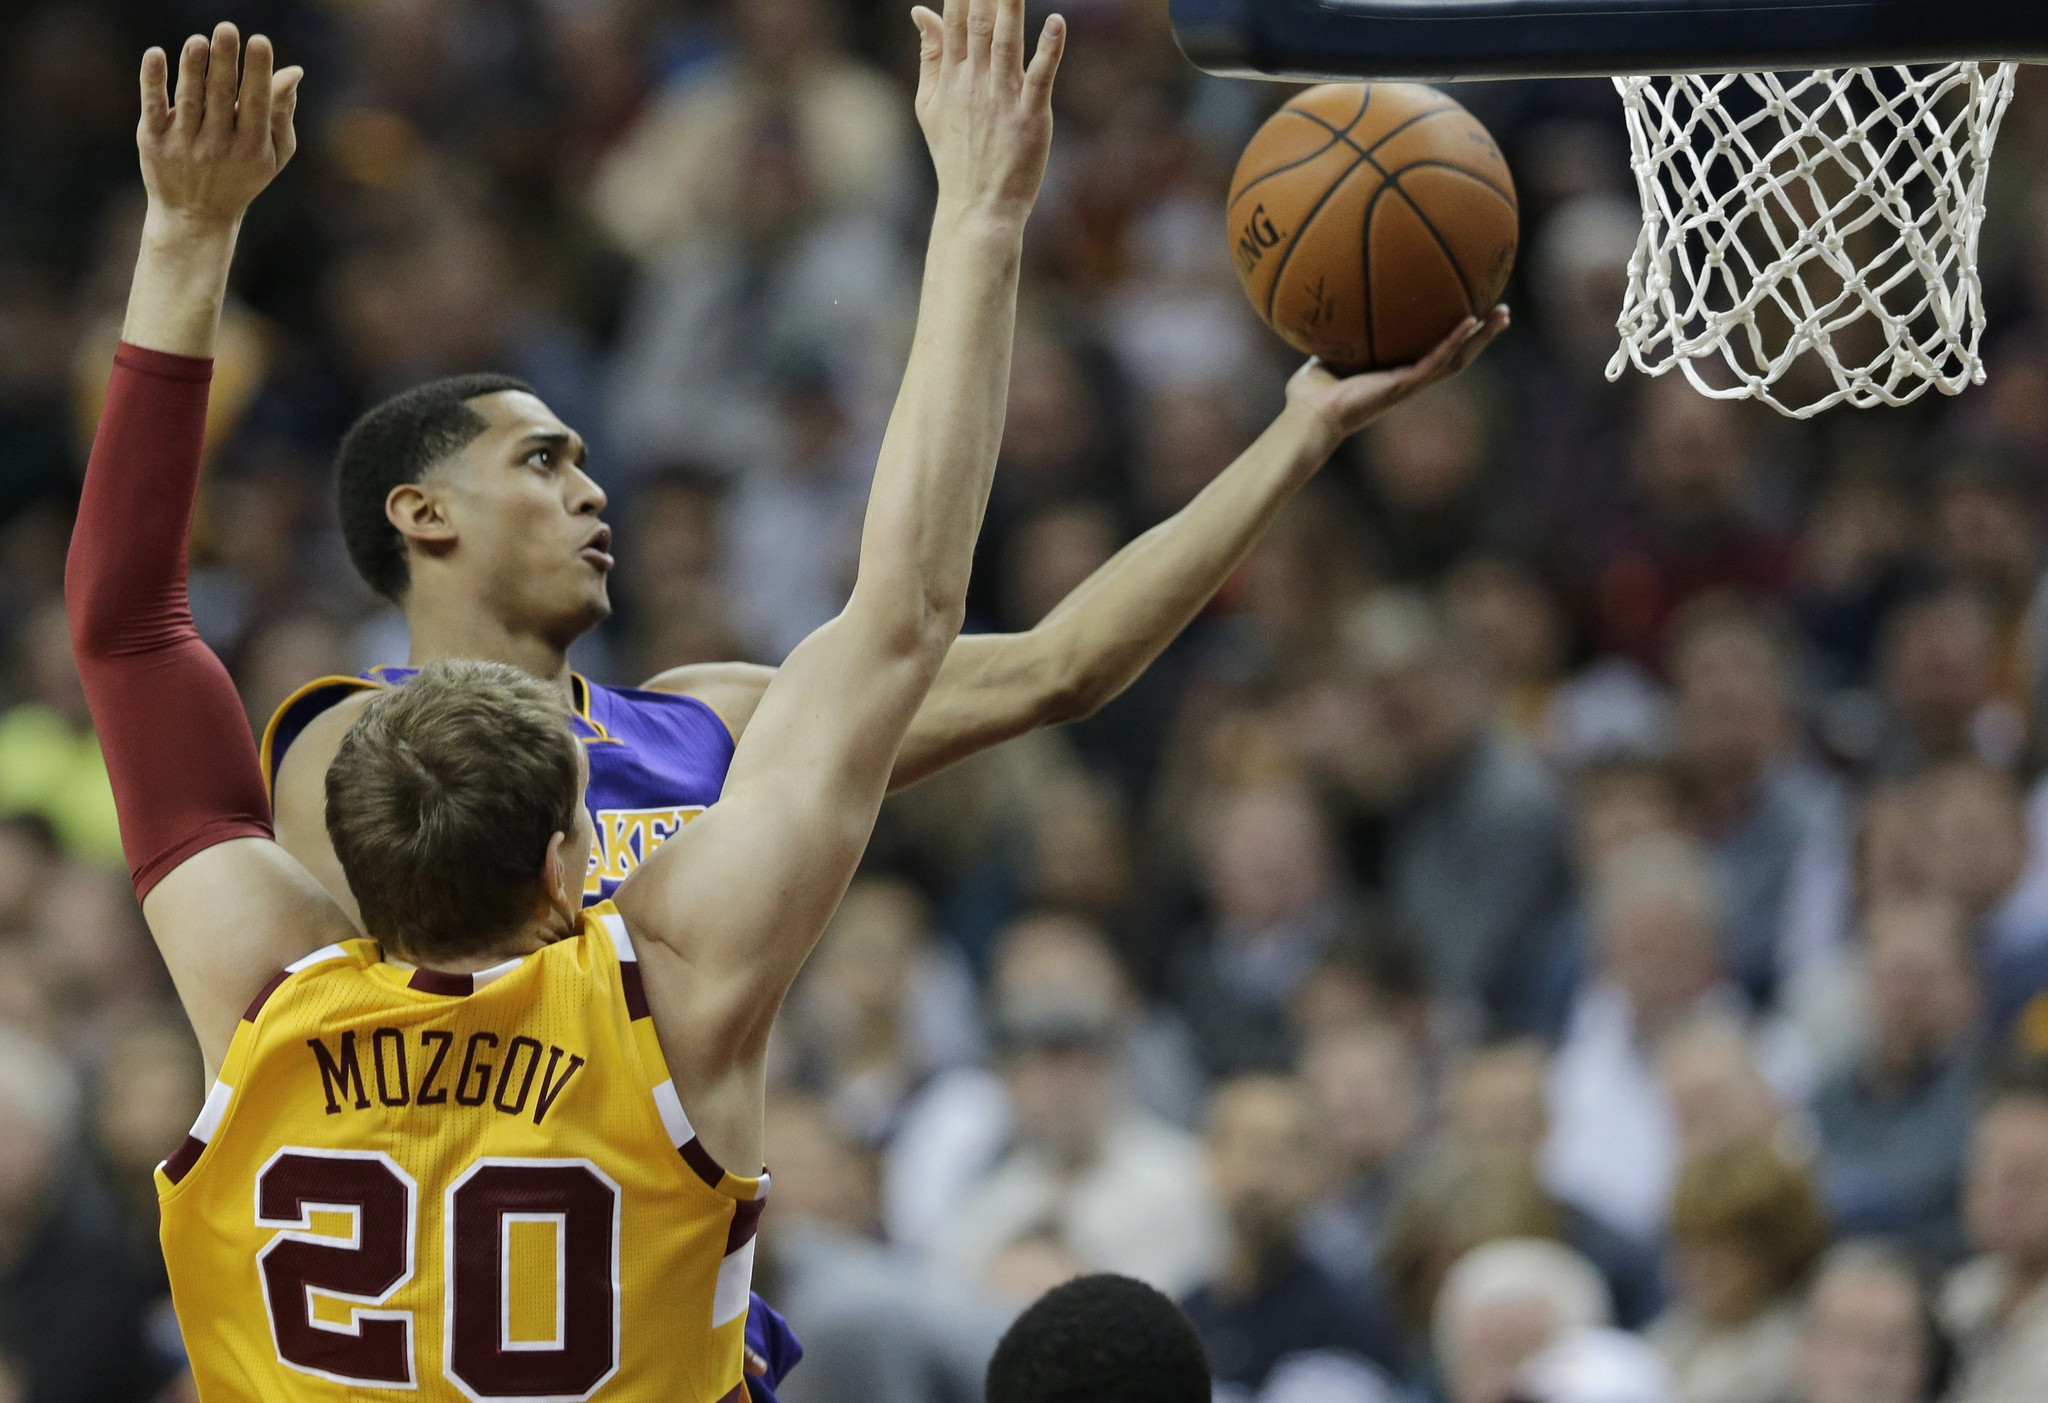 La-sp-ln-lakers-cleveland-cavaliers-20160210